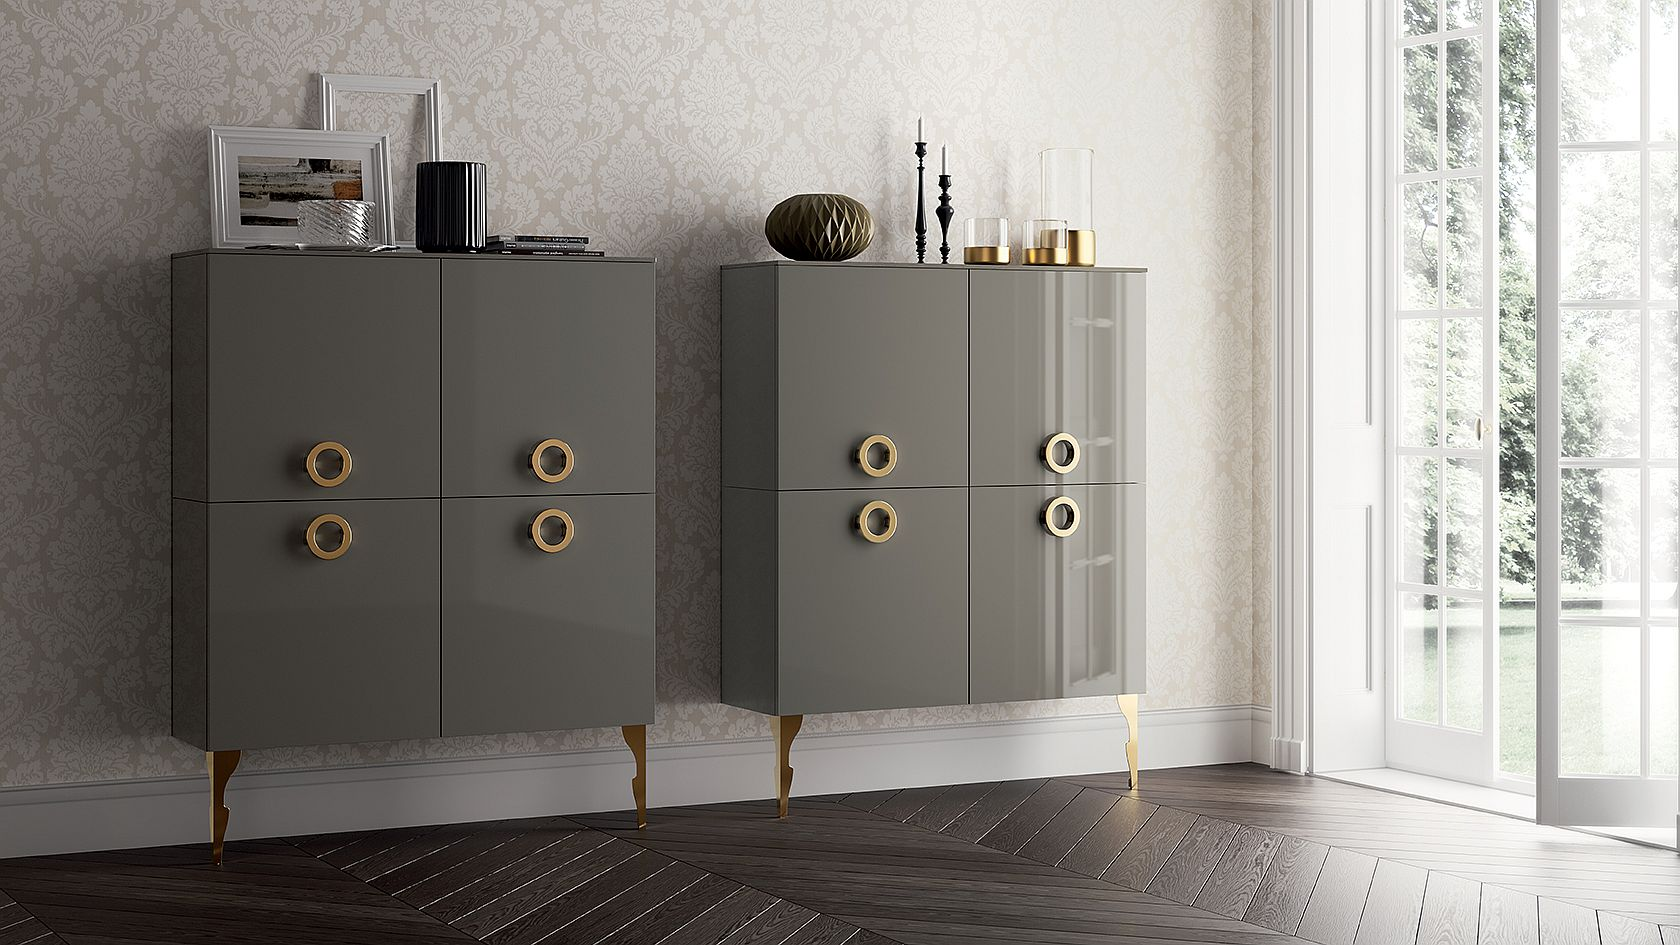 Twin cabinets in Titanium gray with metallic accents